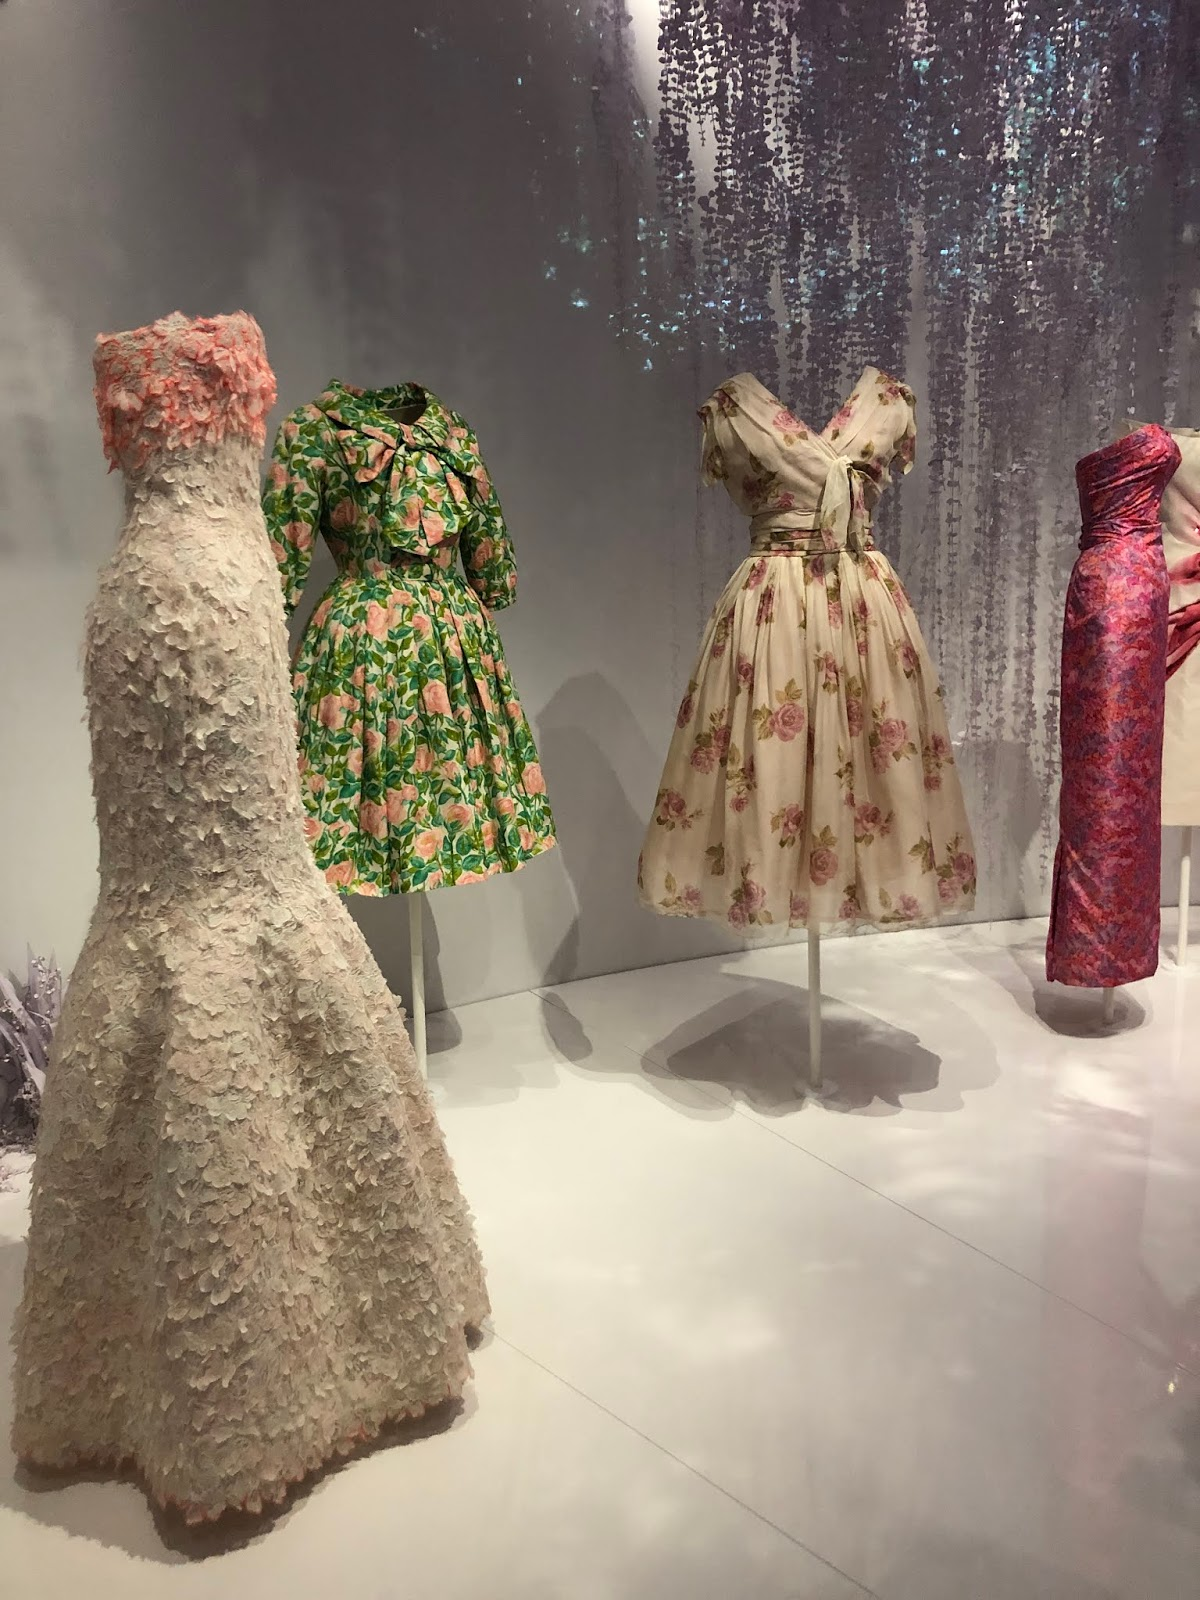 christian dior exhibition v and a wisteria